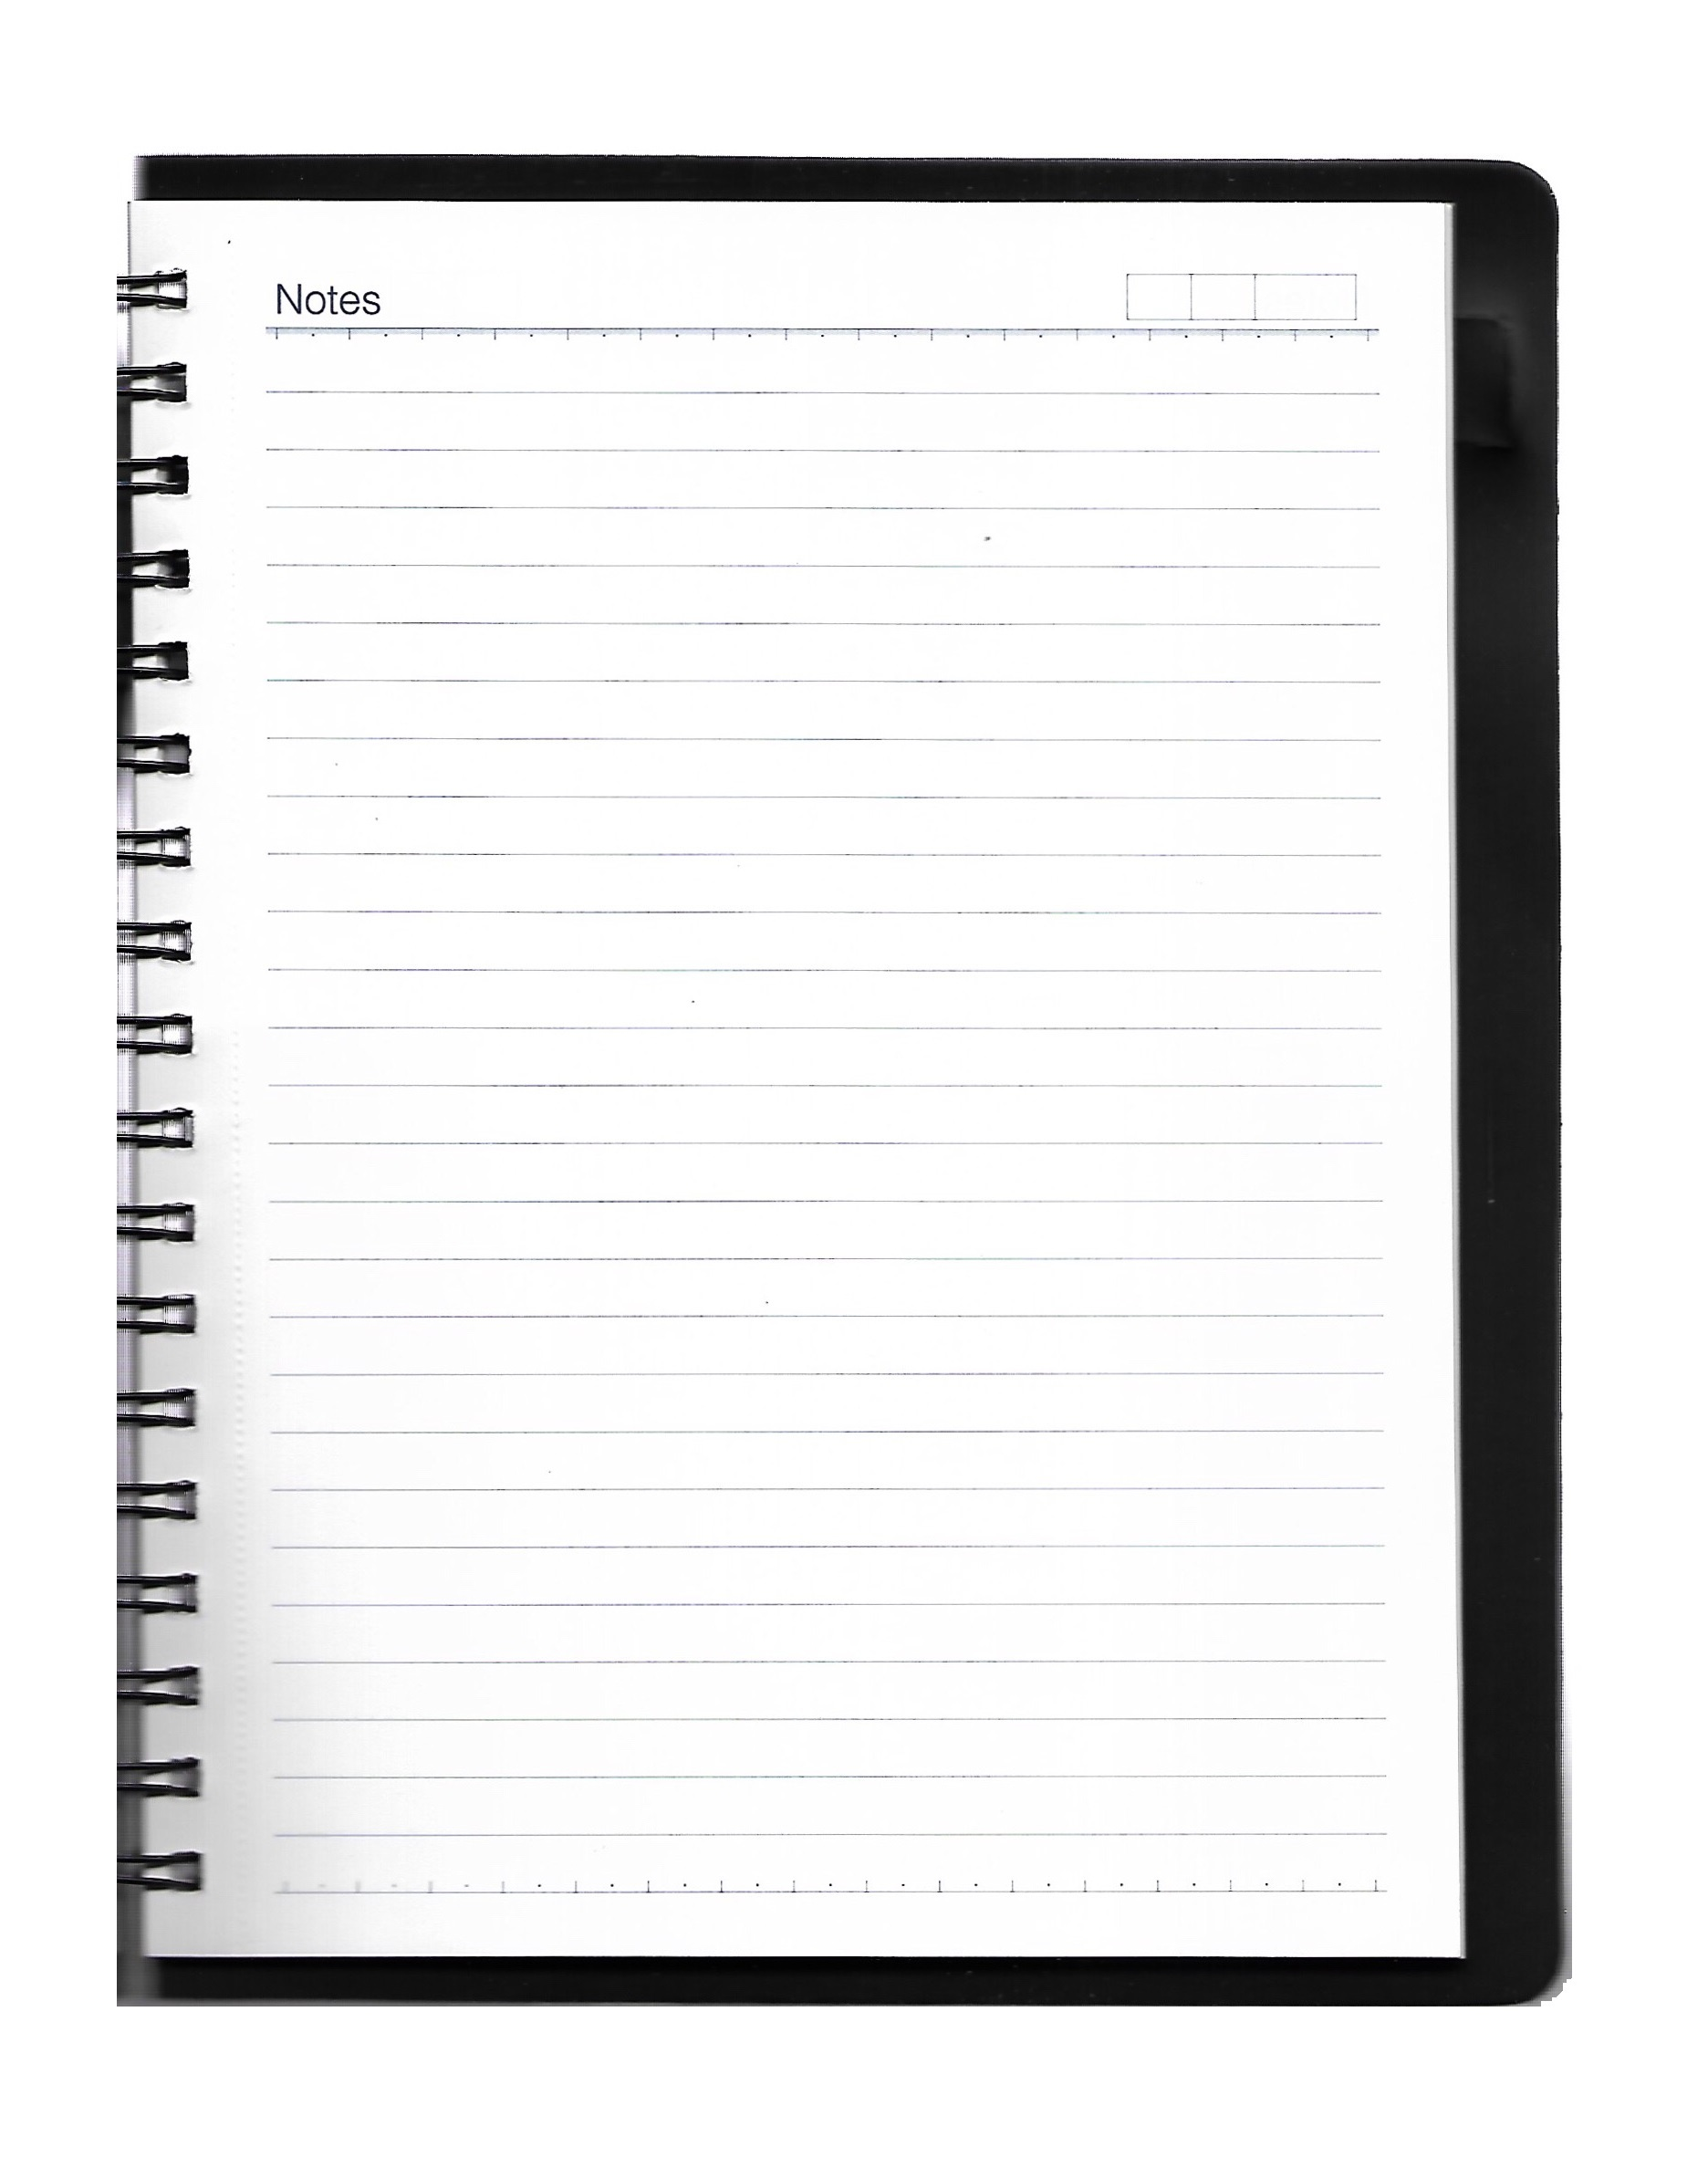 Nescafe Size Single Subject Premium Wiro Notebook - 70 GSM, Single Ruled, 160 Pages